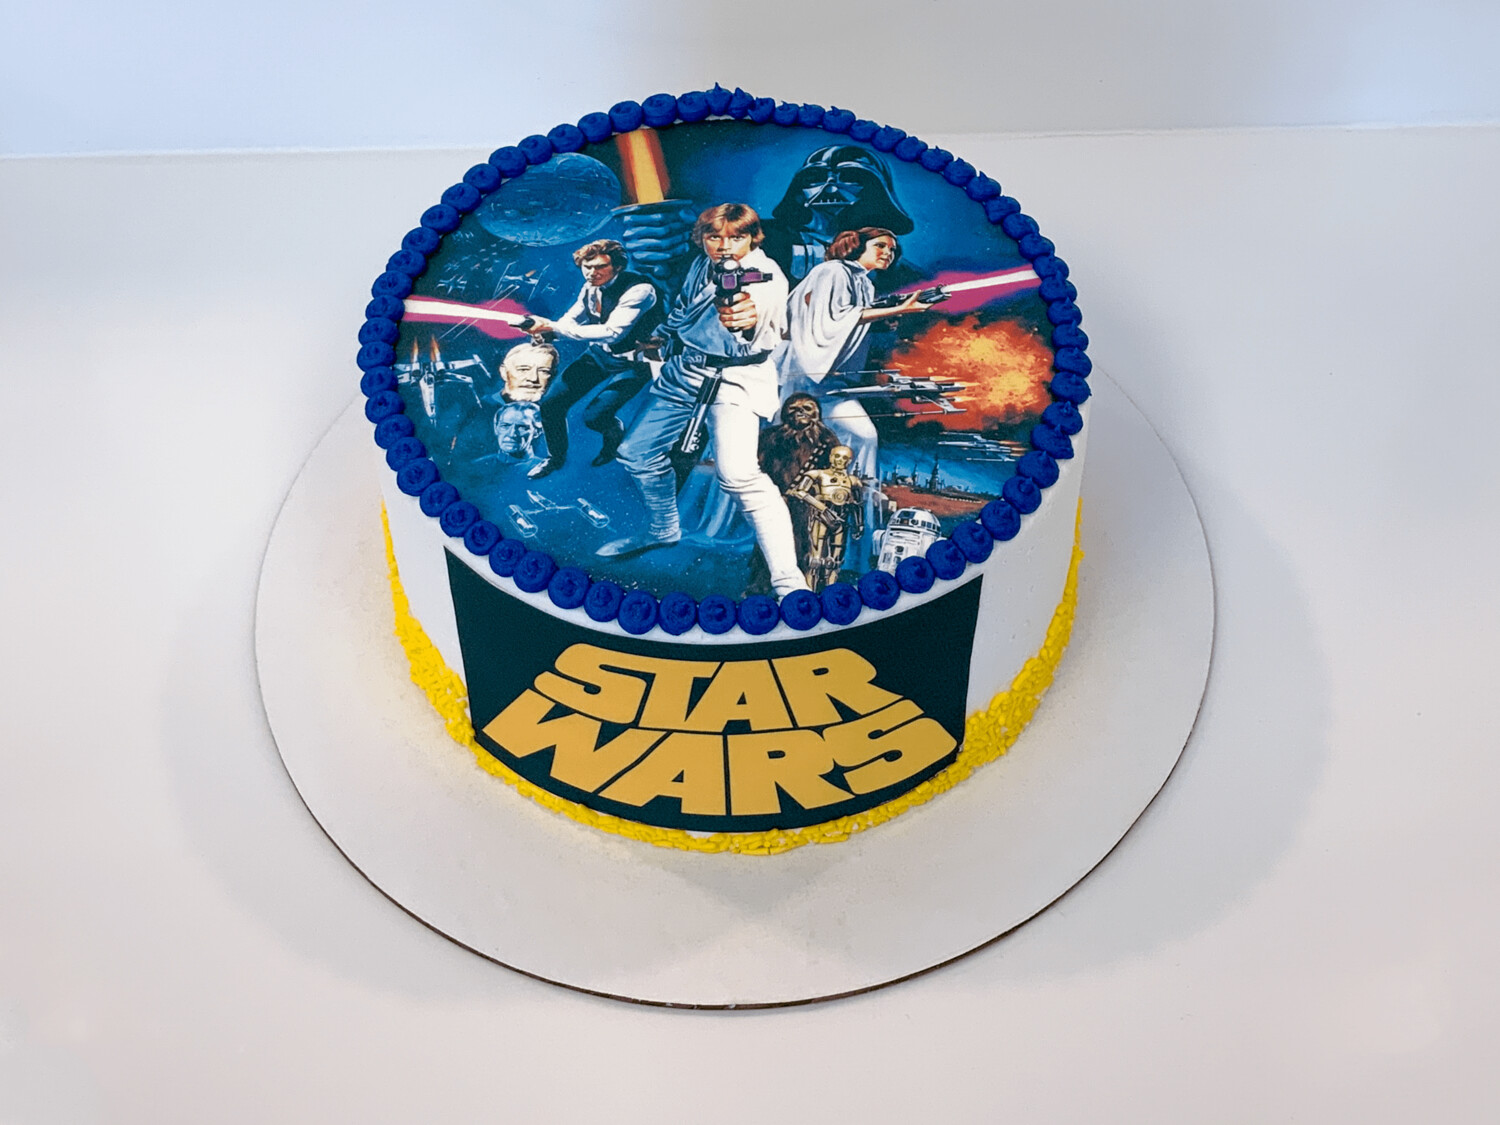 Star Wars Double Image Cake